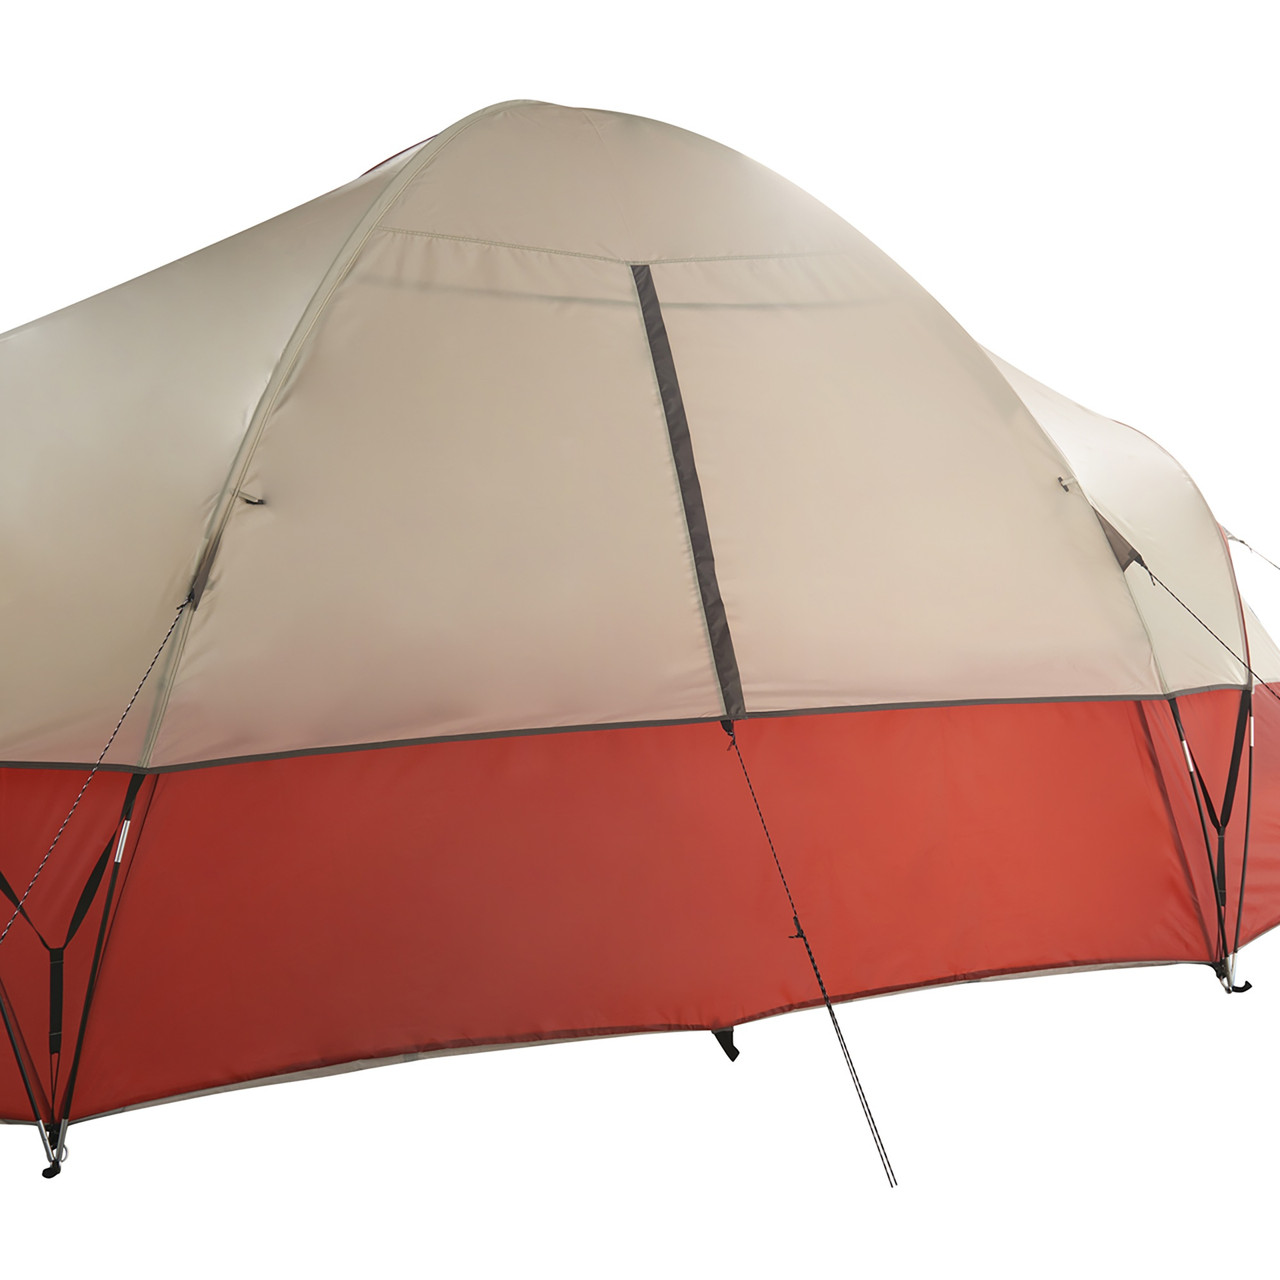 Wenzel Bristlecone 8 Person Dome Tent, showing rear window, fully closed